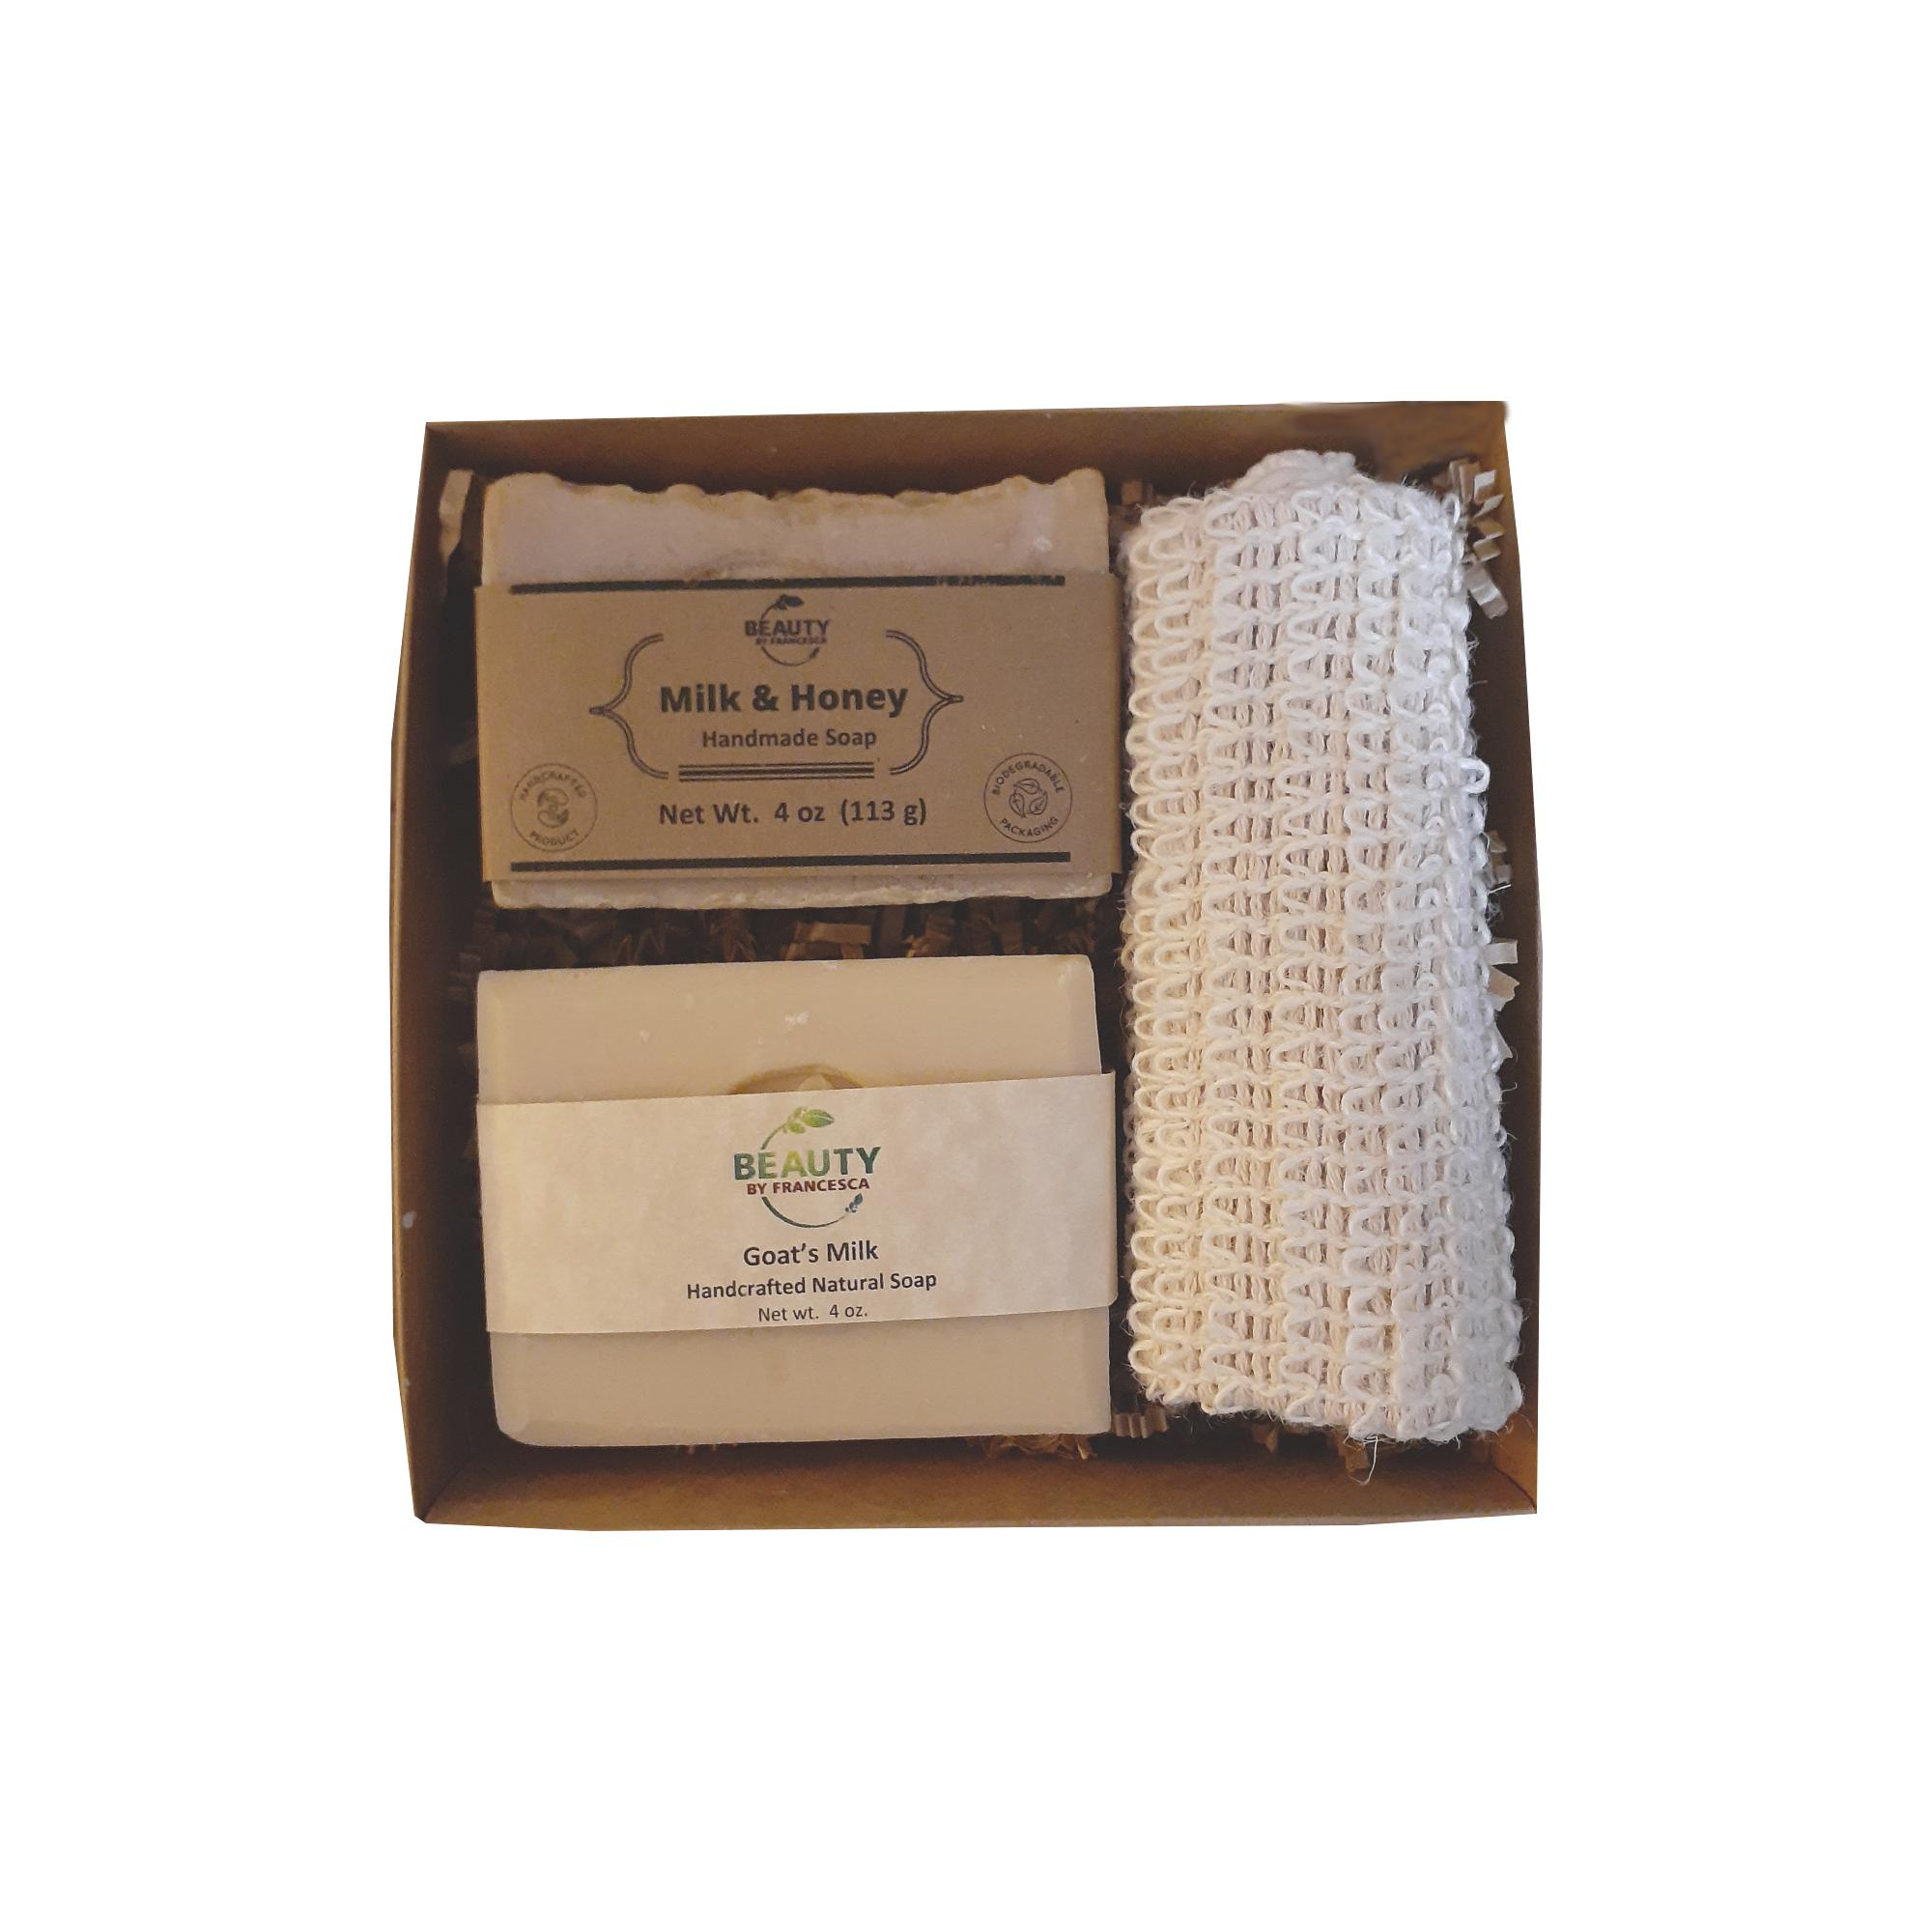 2 bar soap set with sisal -goat's milk and milk & honey open box